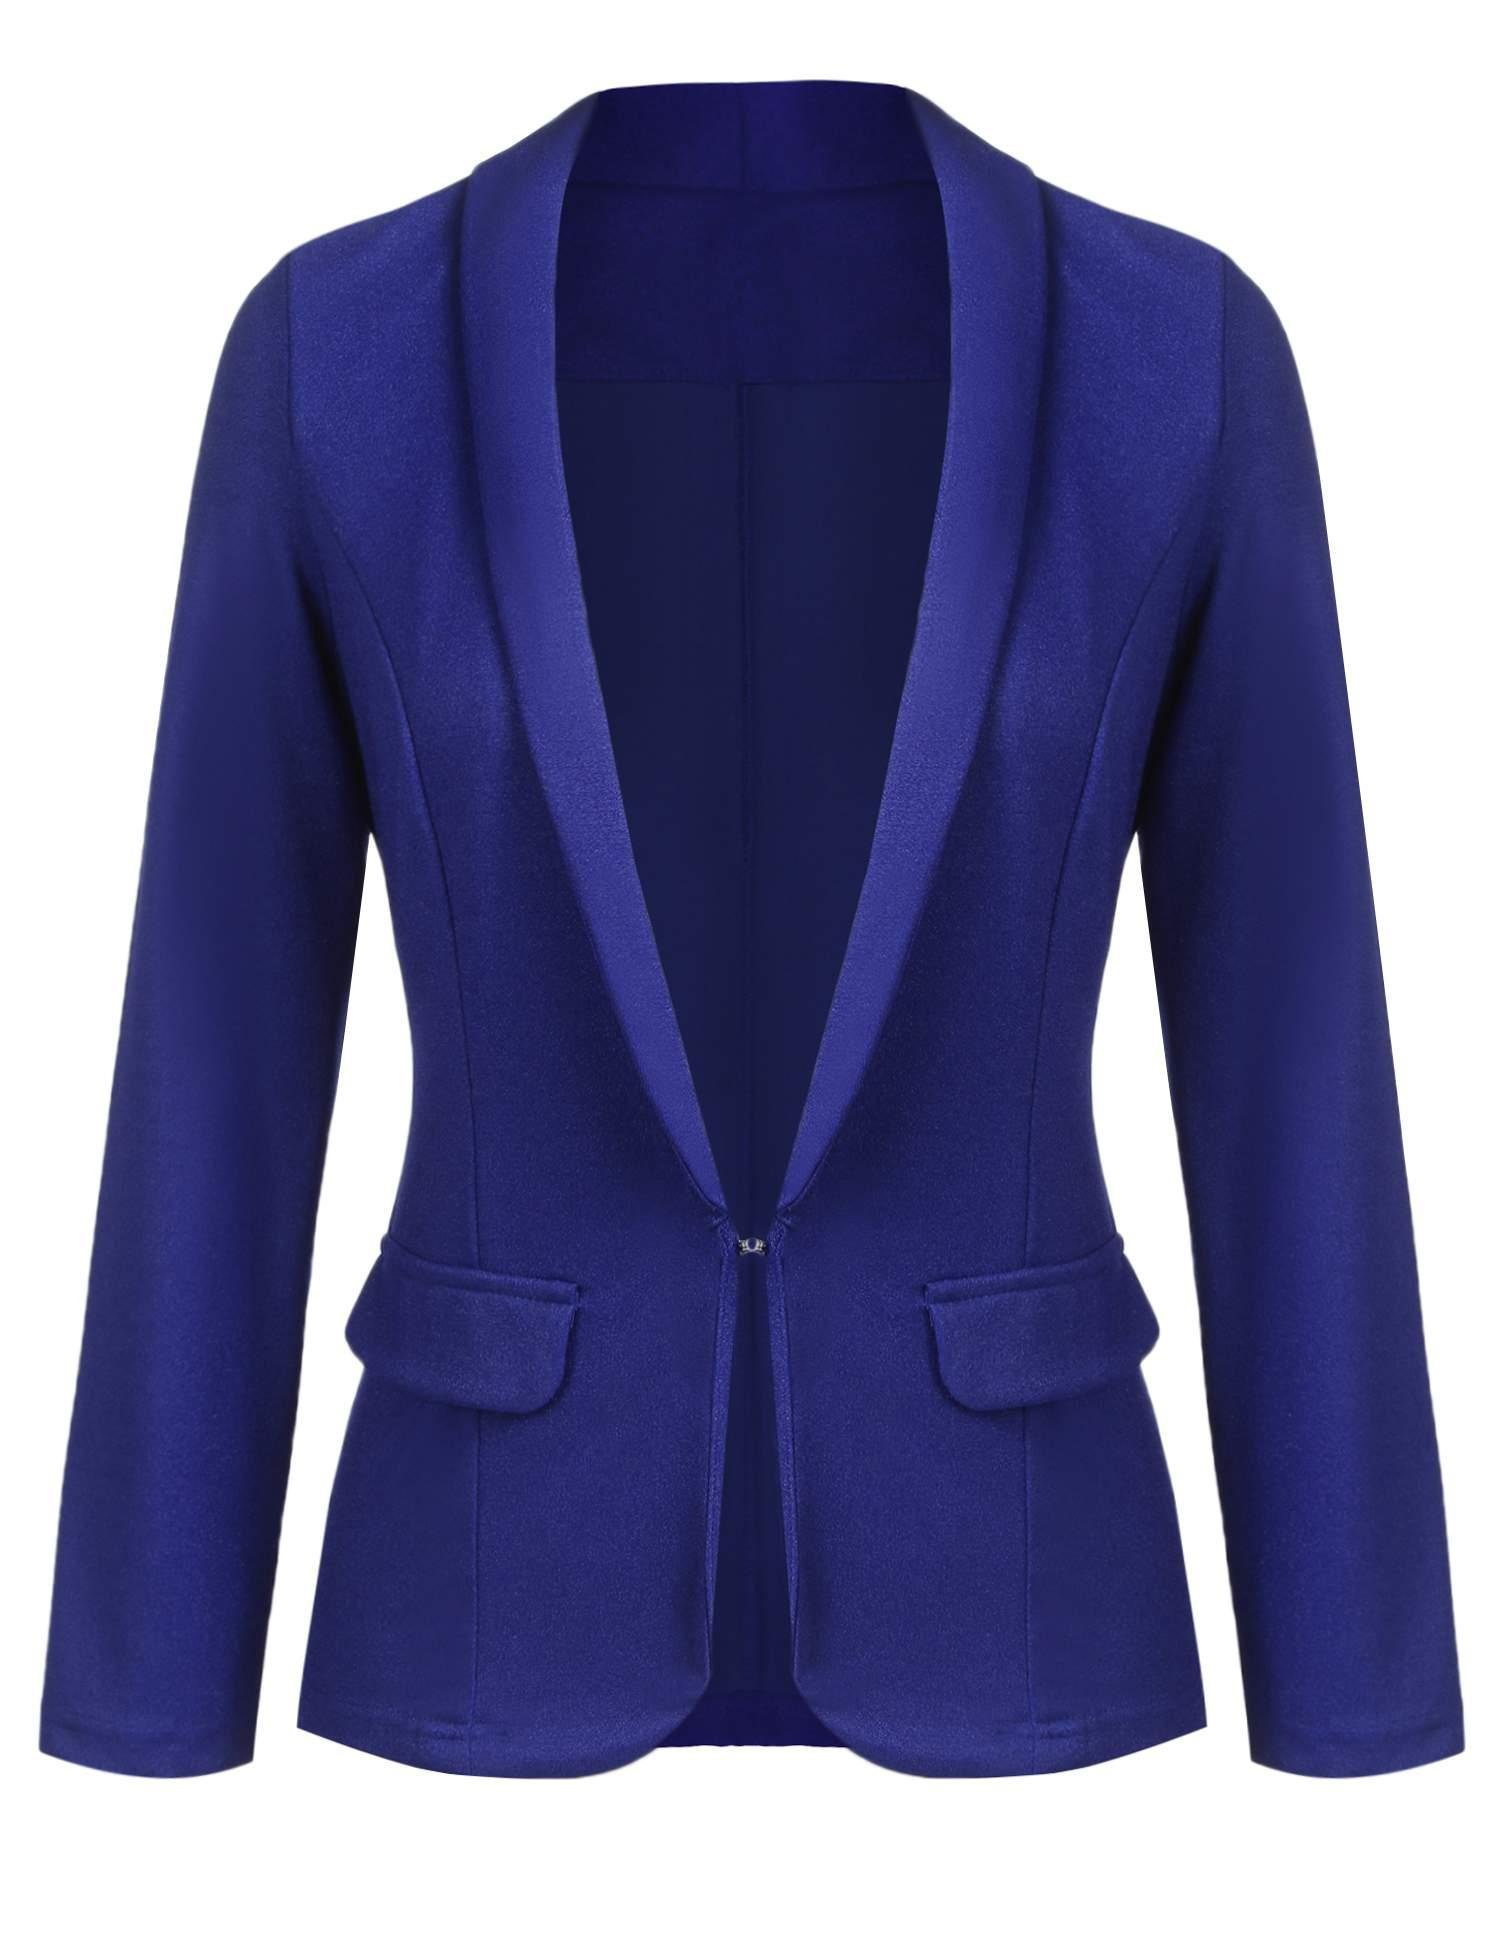 Yealsha Womens Casual Lightweight Long Sleeve Fitted Open Blazer Jacket Plus Size